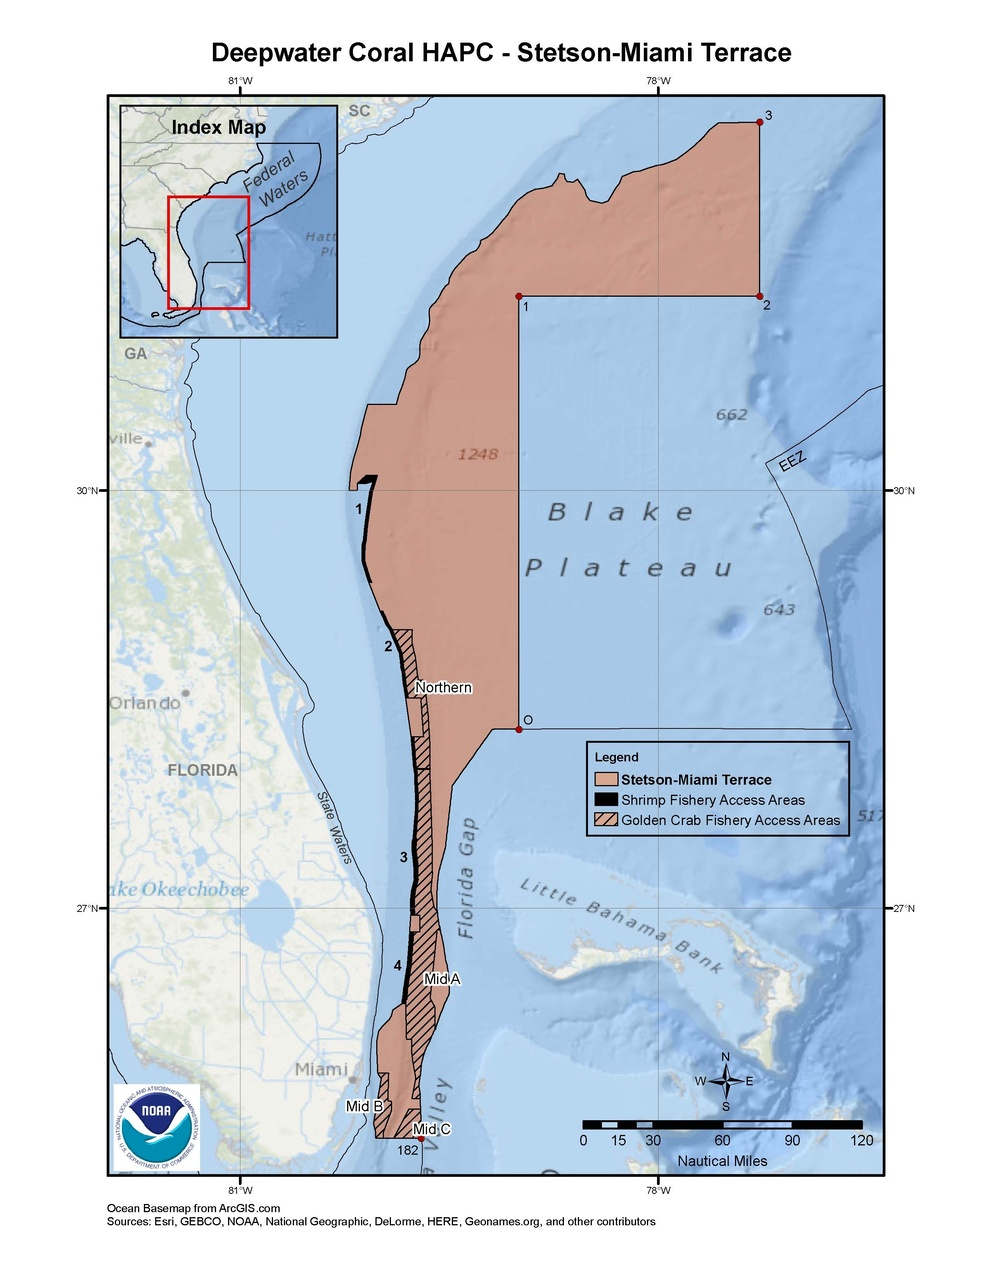 This is a map of the Stetson-Miami Terrace Deepwater Coral HAPC in the South Atlantic Region.